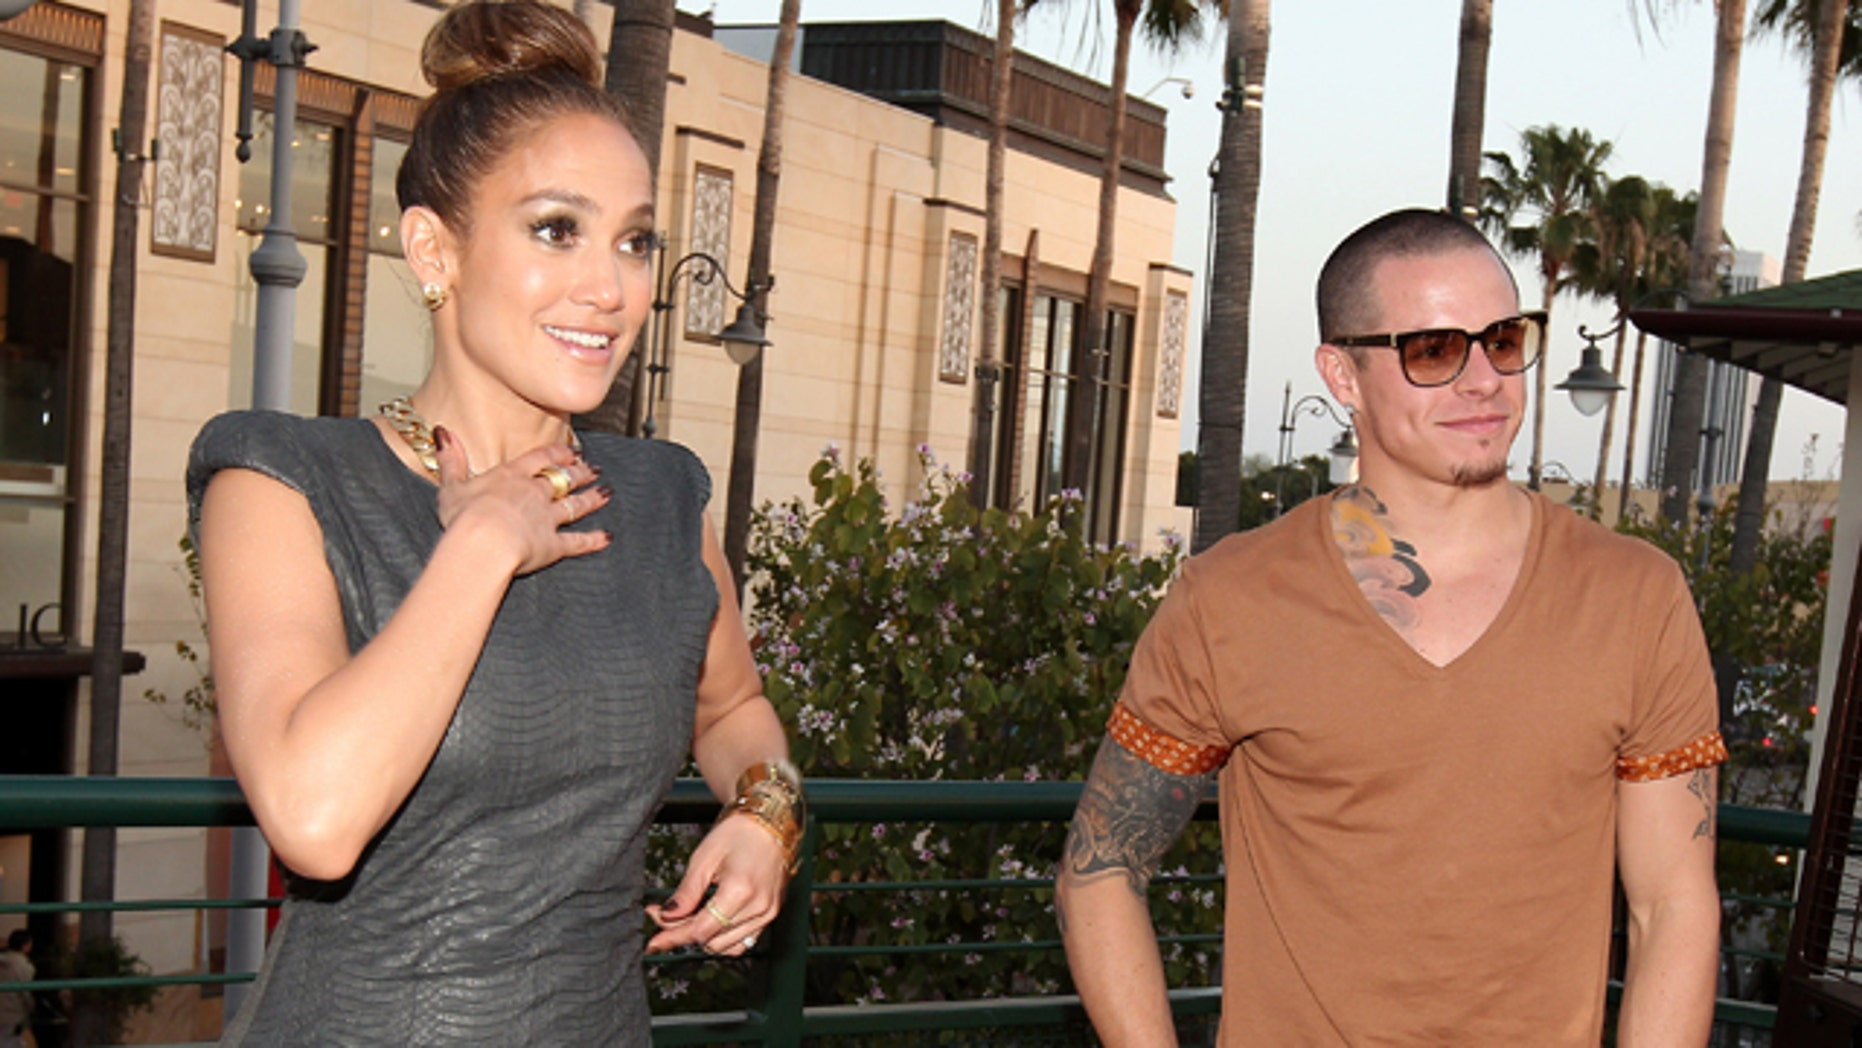 April 5, 2012: Singer/Actress Jennifer Lopez and Casper Smart attend the Planet Dailies And Mixology 101 Grand Opening held at Planet Dailies Mixology 101 in Los Angeles, California.